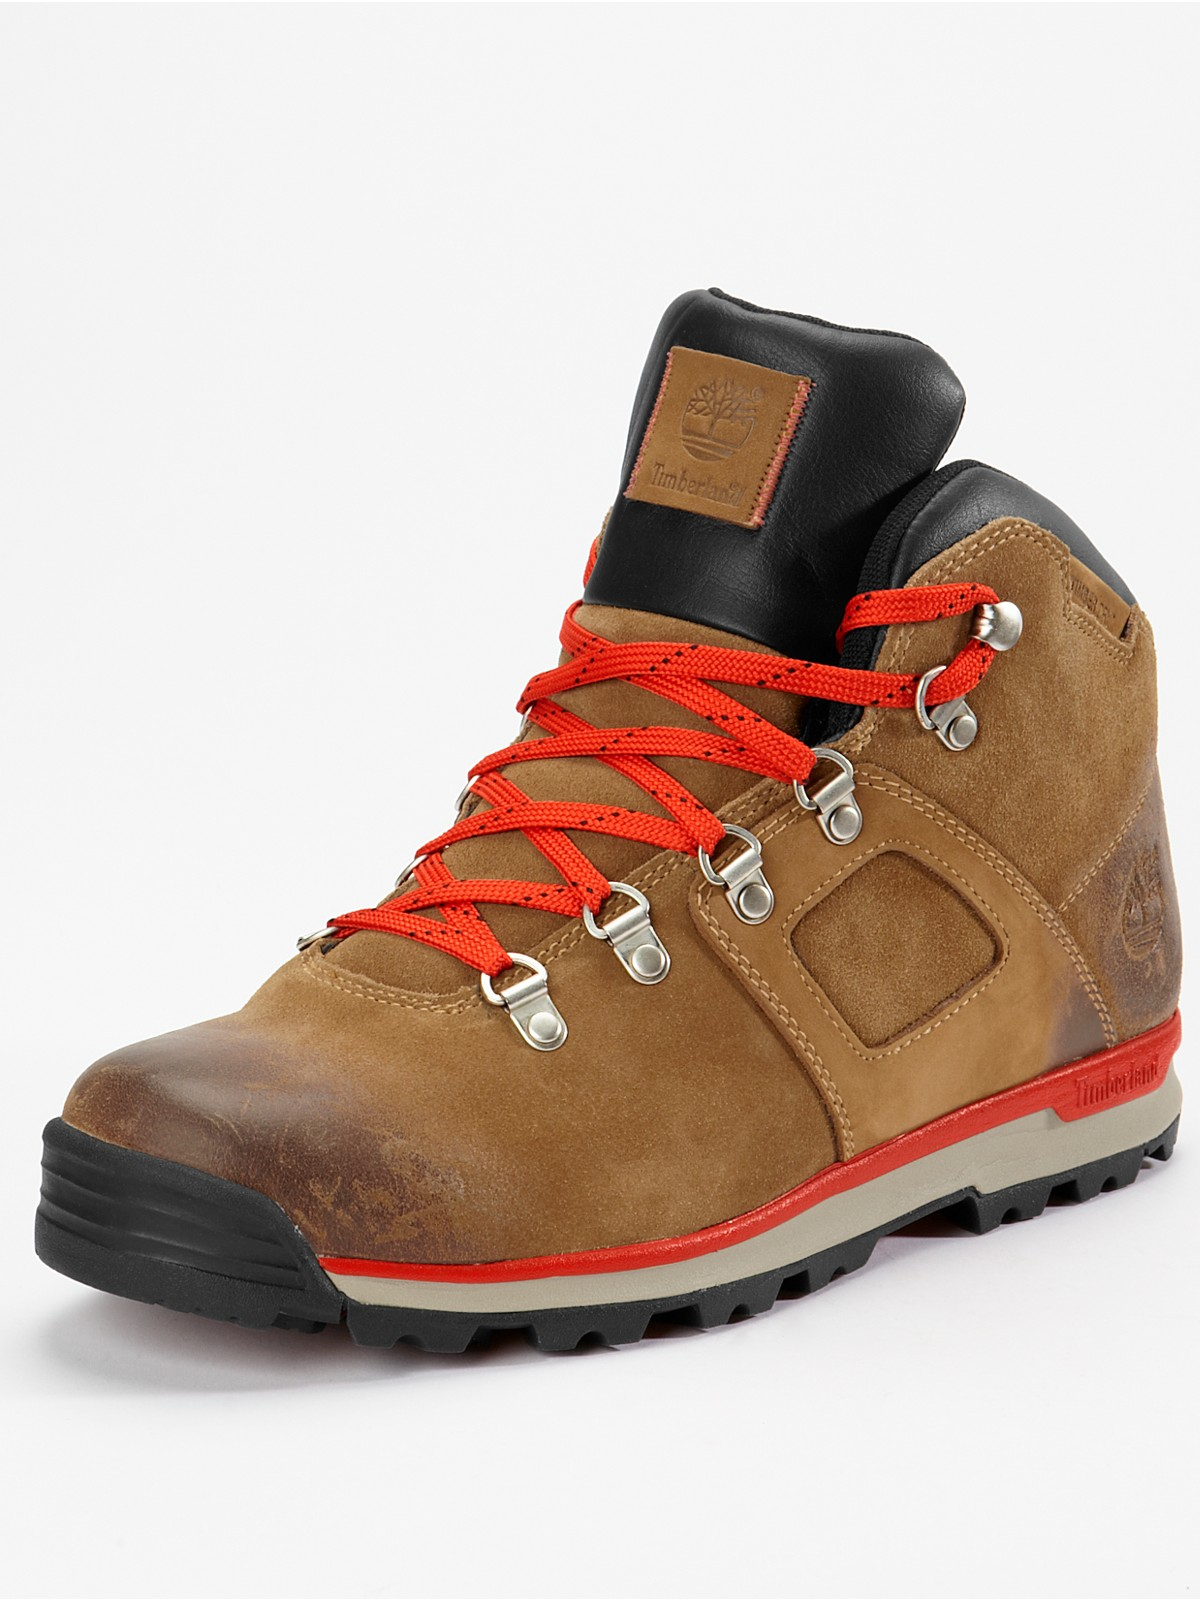 Timberland Boots For Men 2012 Timberland Gt S...